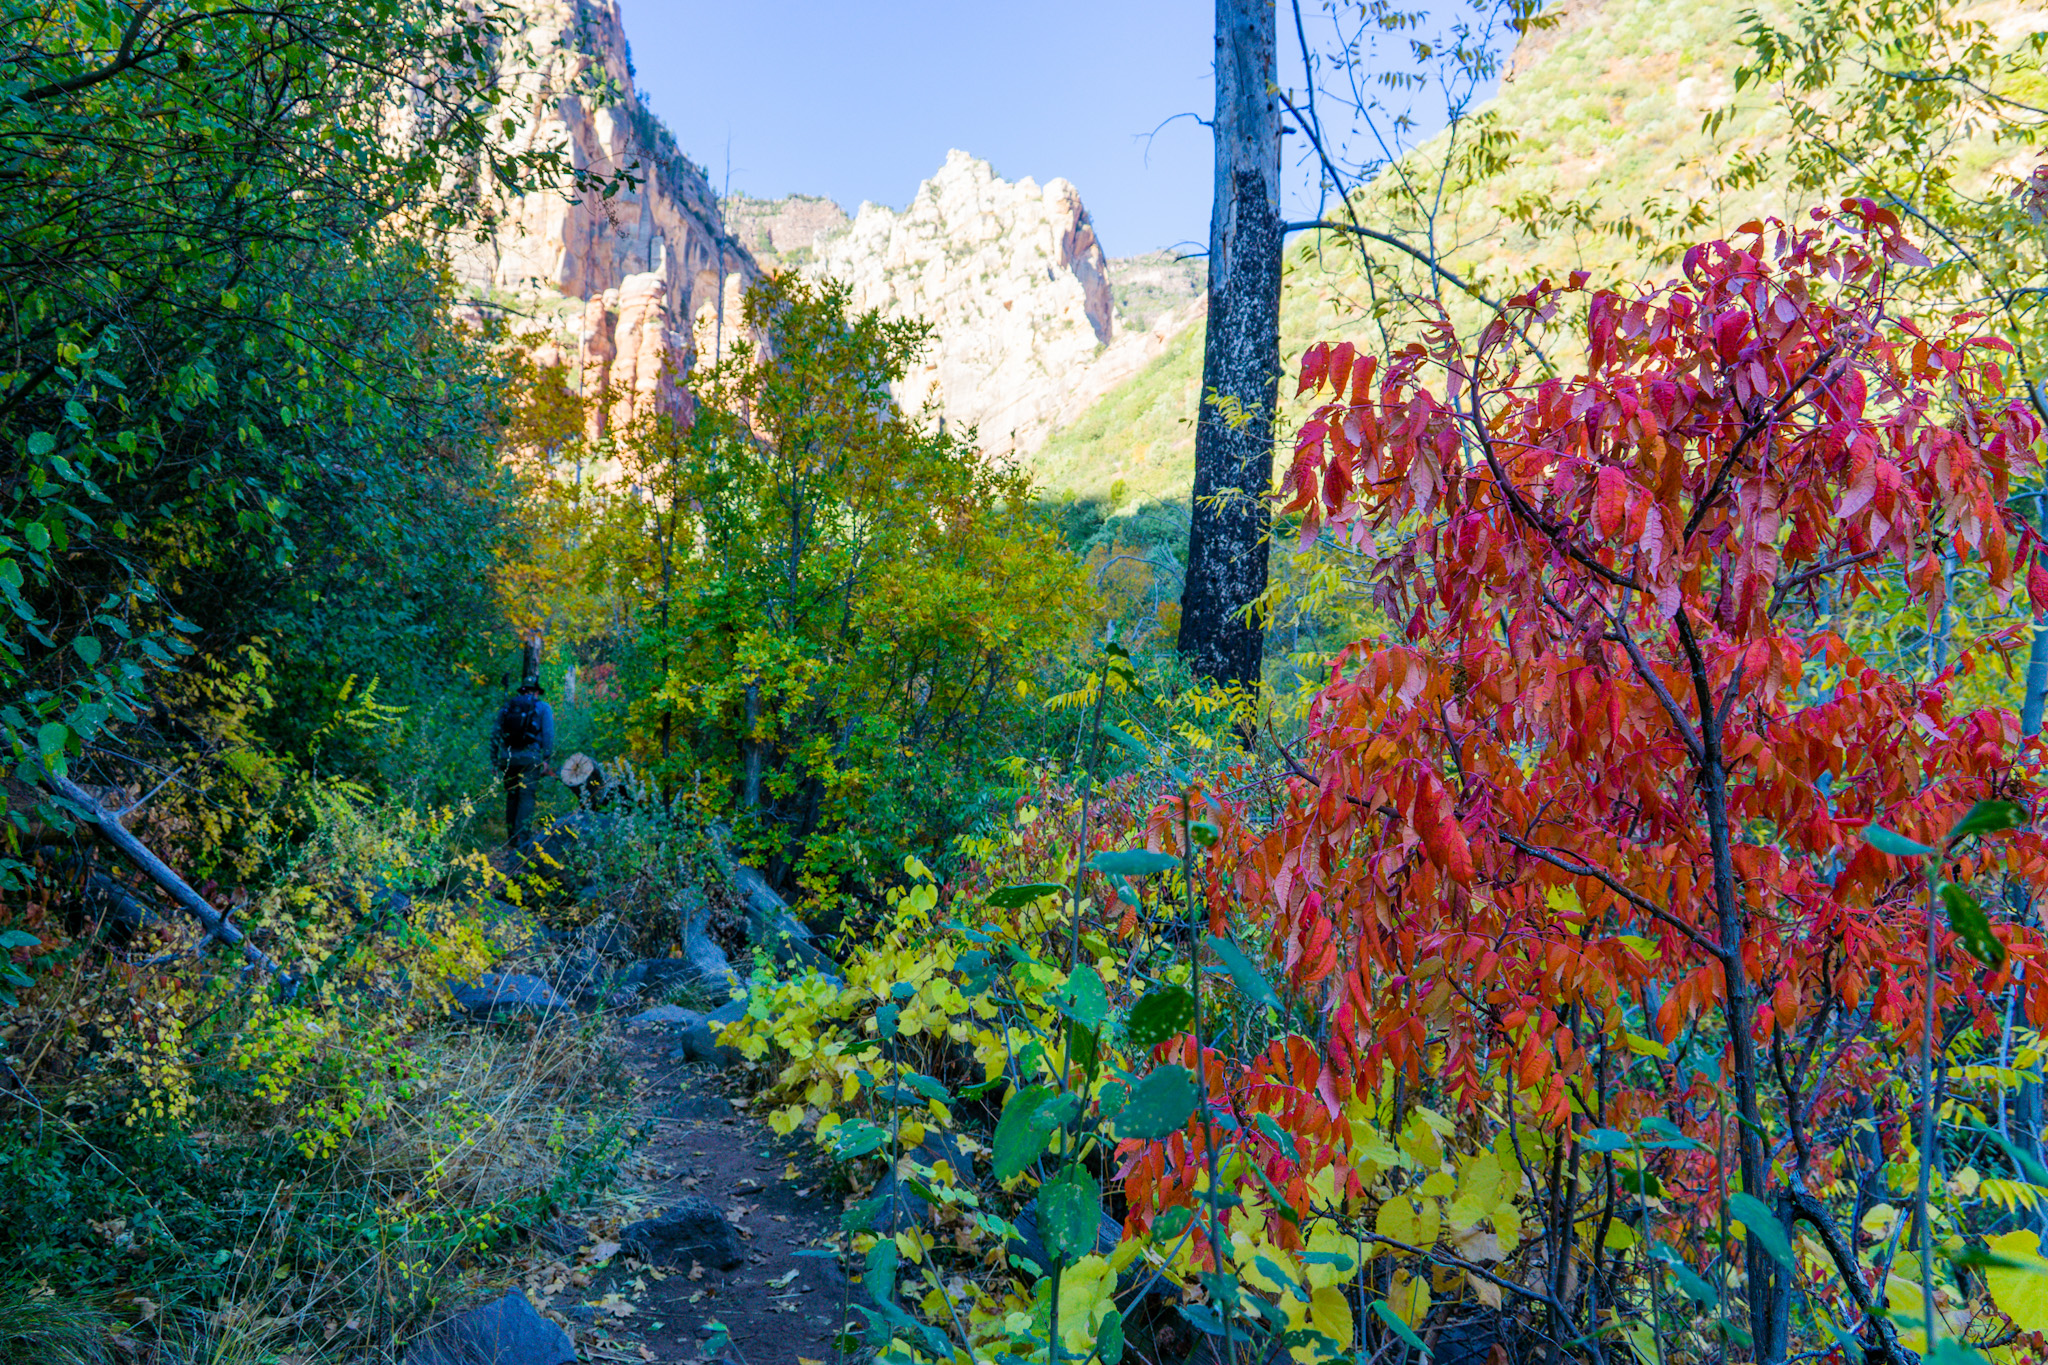 Sedona in full glory!